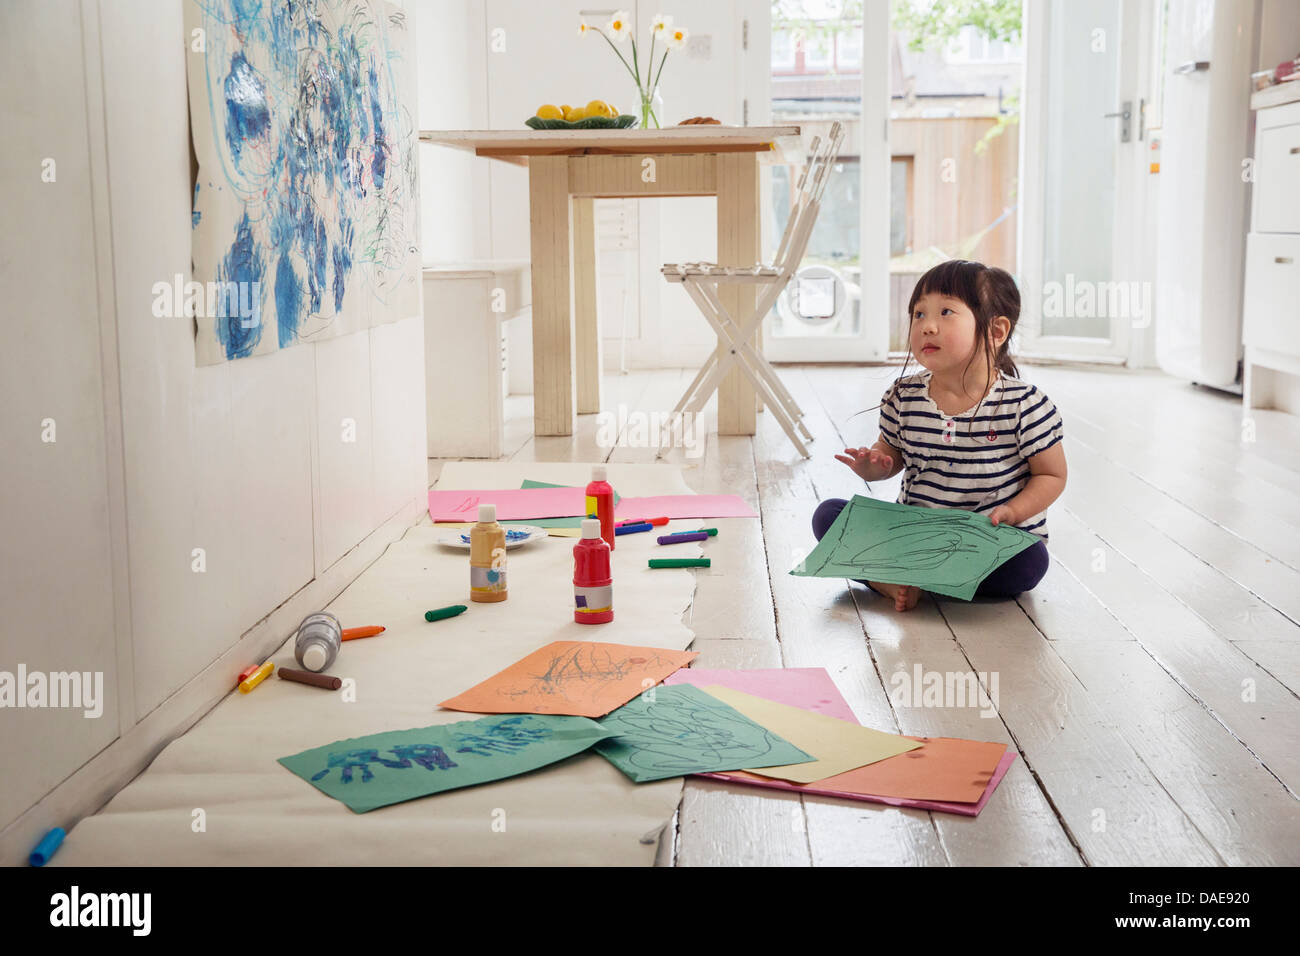 Female toddler sitting on floor with drawings - Stock Image